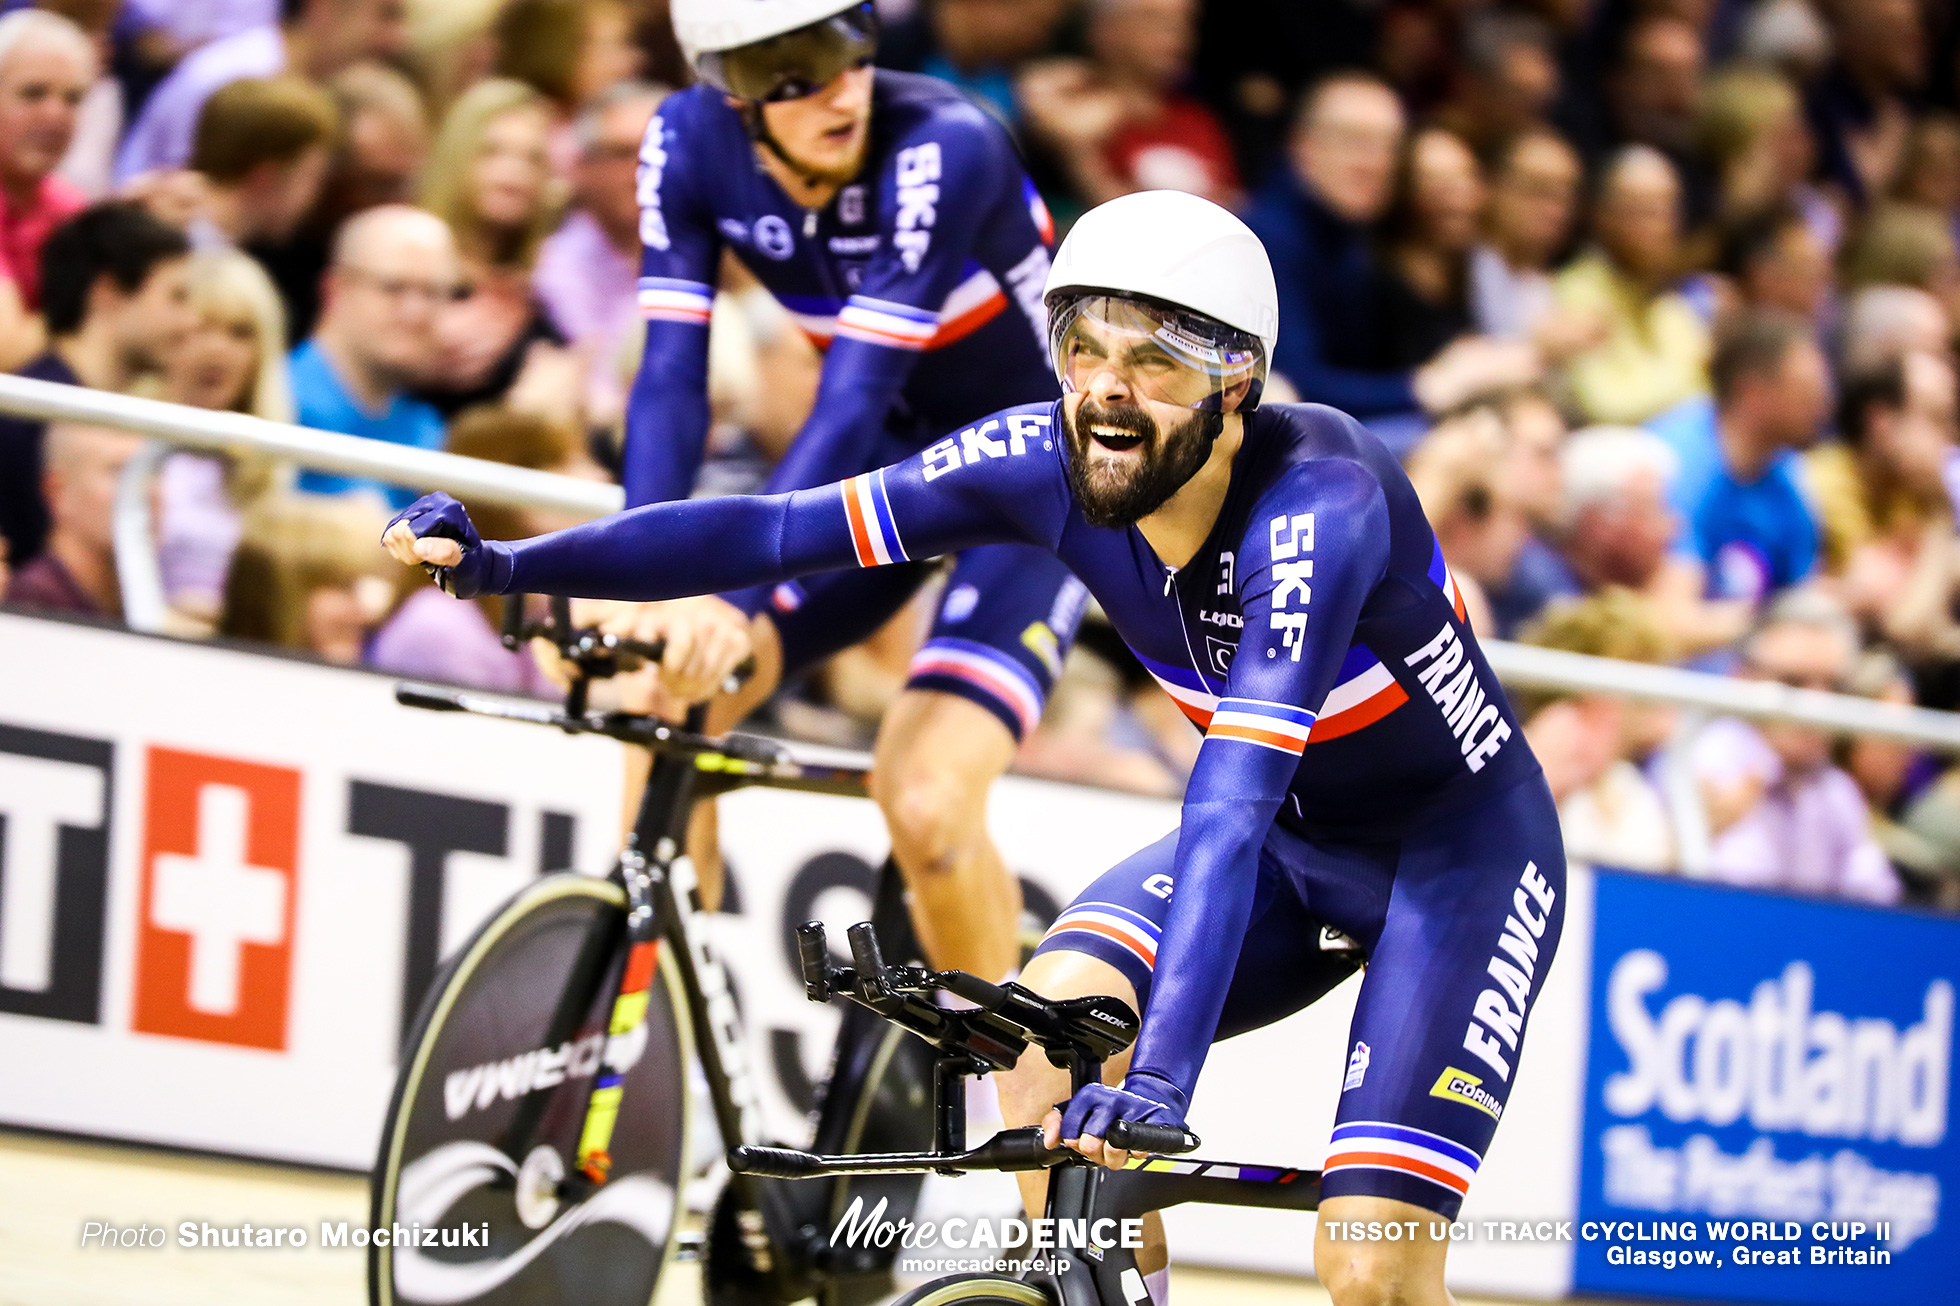 France / Men's Team Pursuit / TISSOT UCI TRACK CYCLING WORLD CUP II, Glasgow, Great Britain